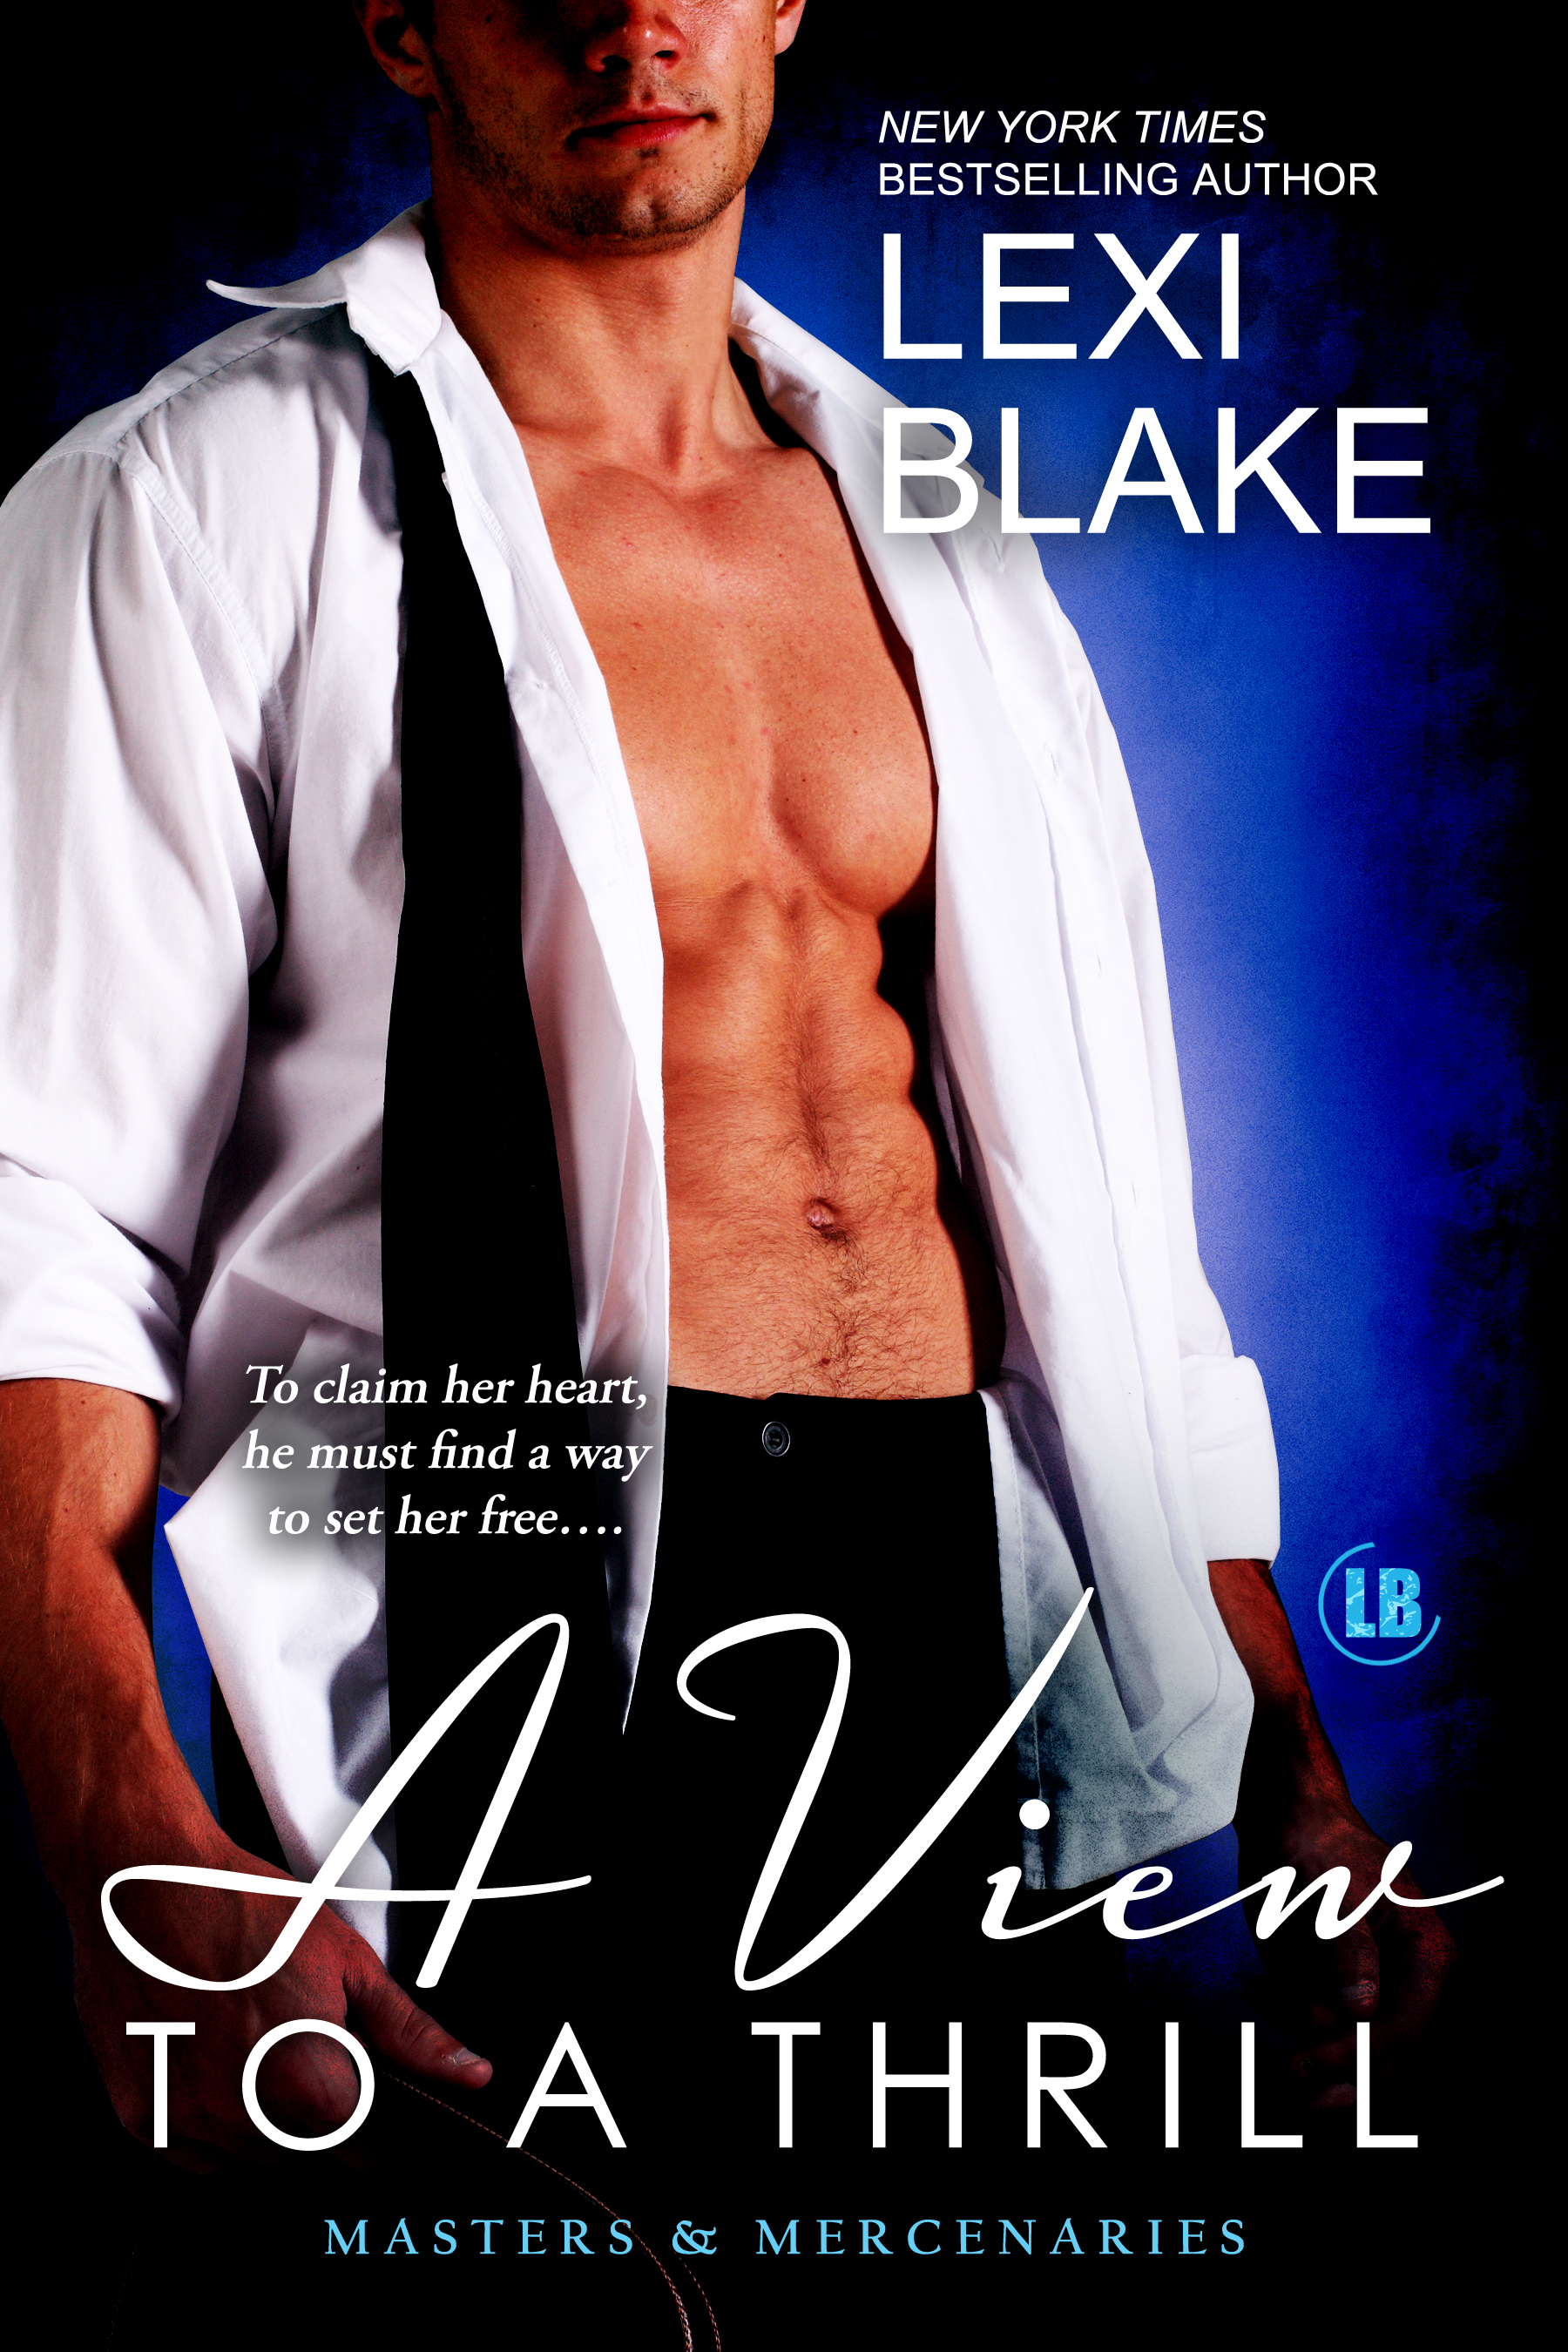 Lexi Blake - A View to a Thrill, Masters and Mercenaries, Book 7